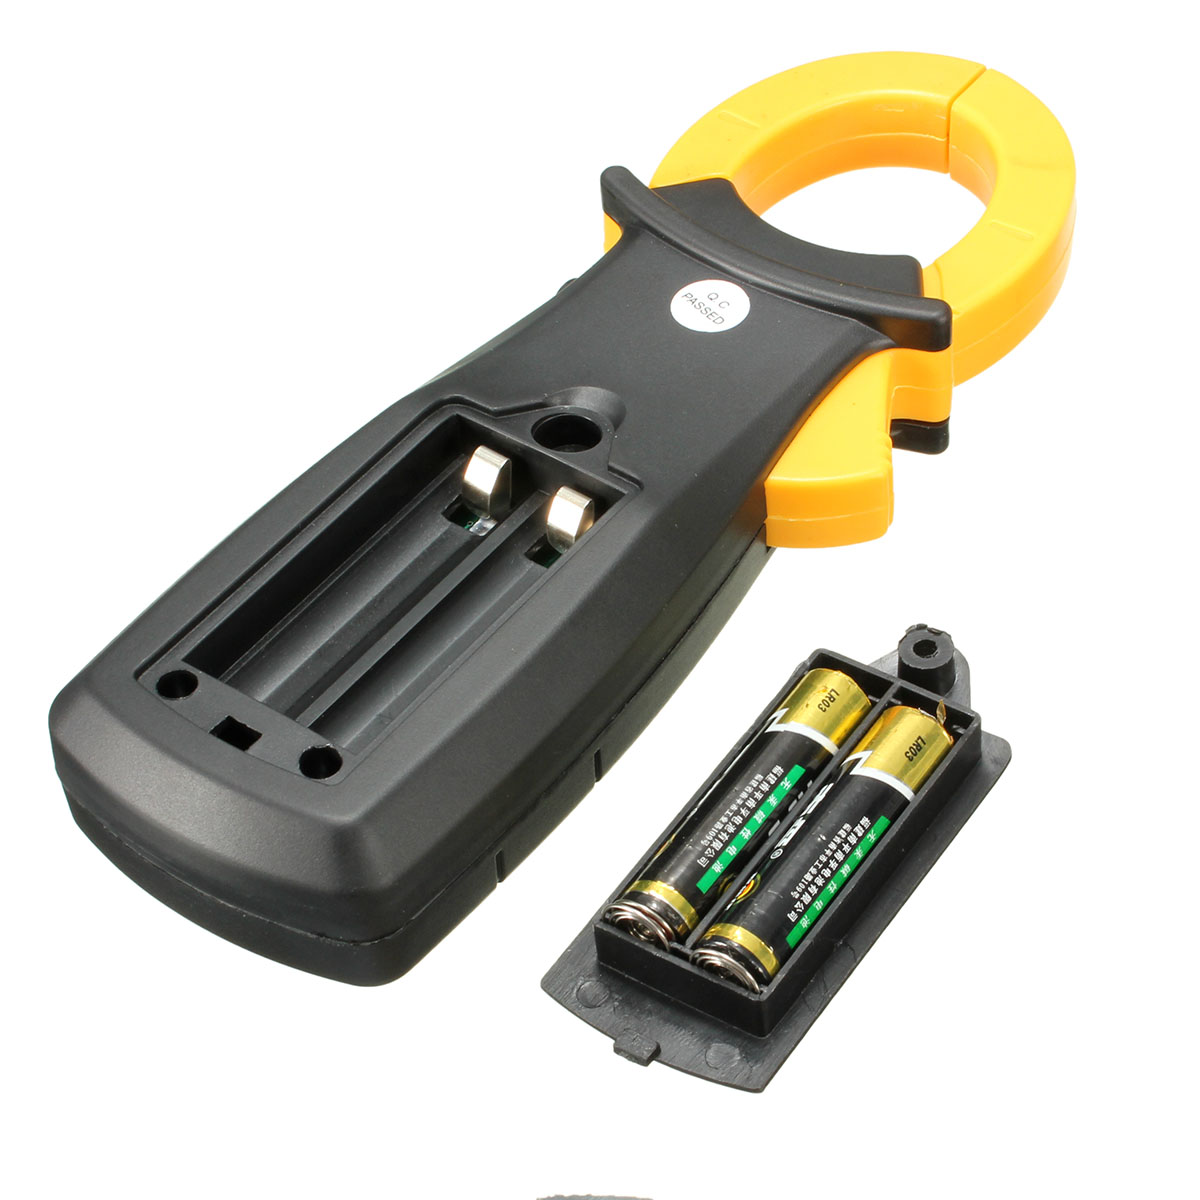 Ac Voltage Wire Identifier Tool : Digital electronic ac dc voltage clamp meter multimeter